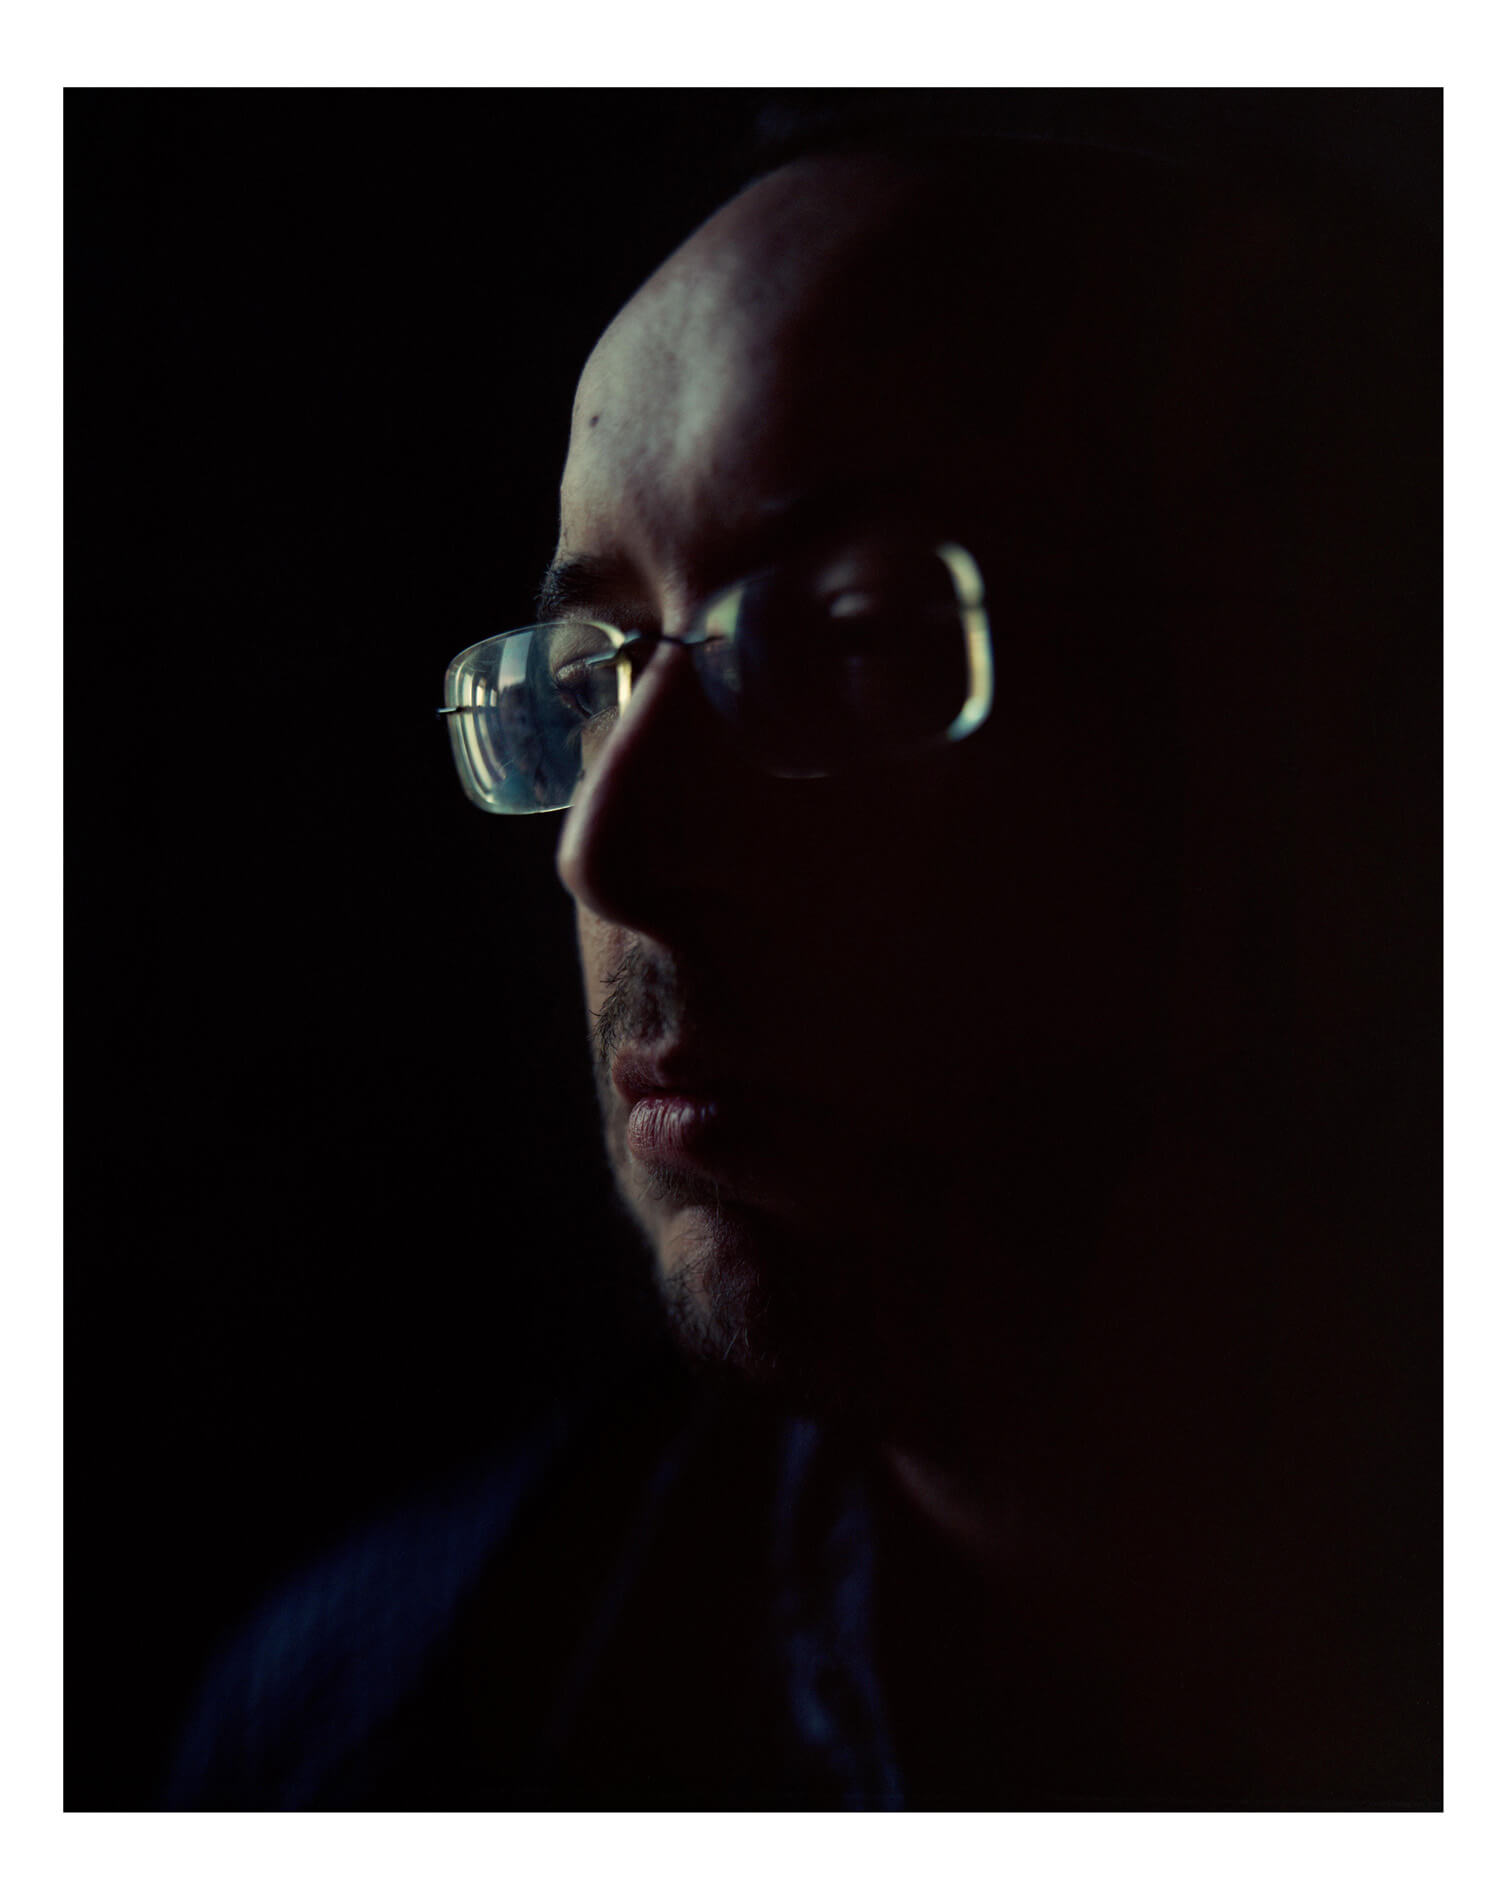 mans face in low light with black background reflecting of glasses